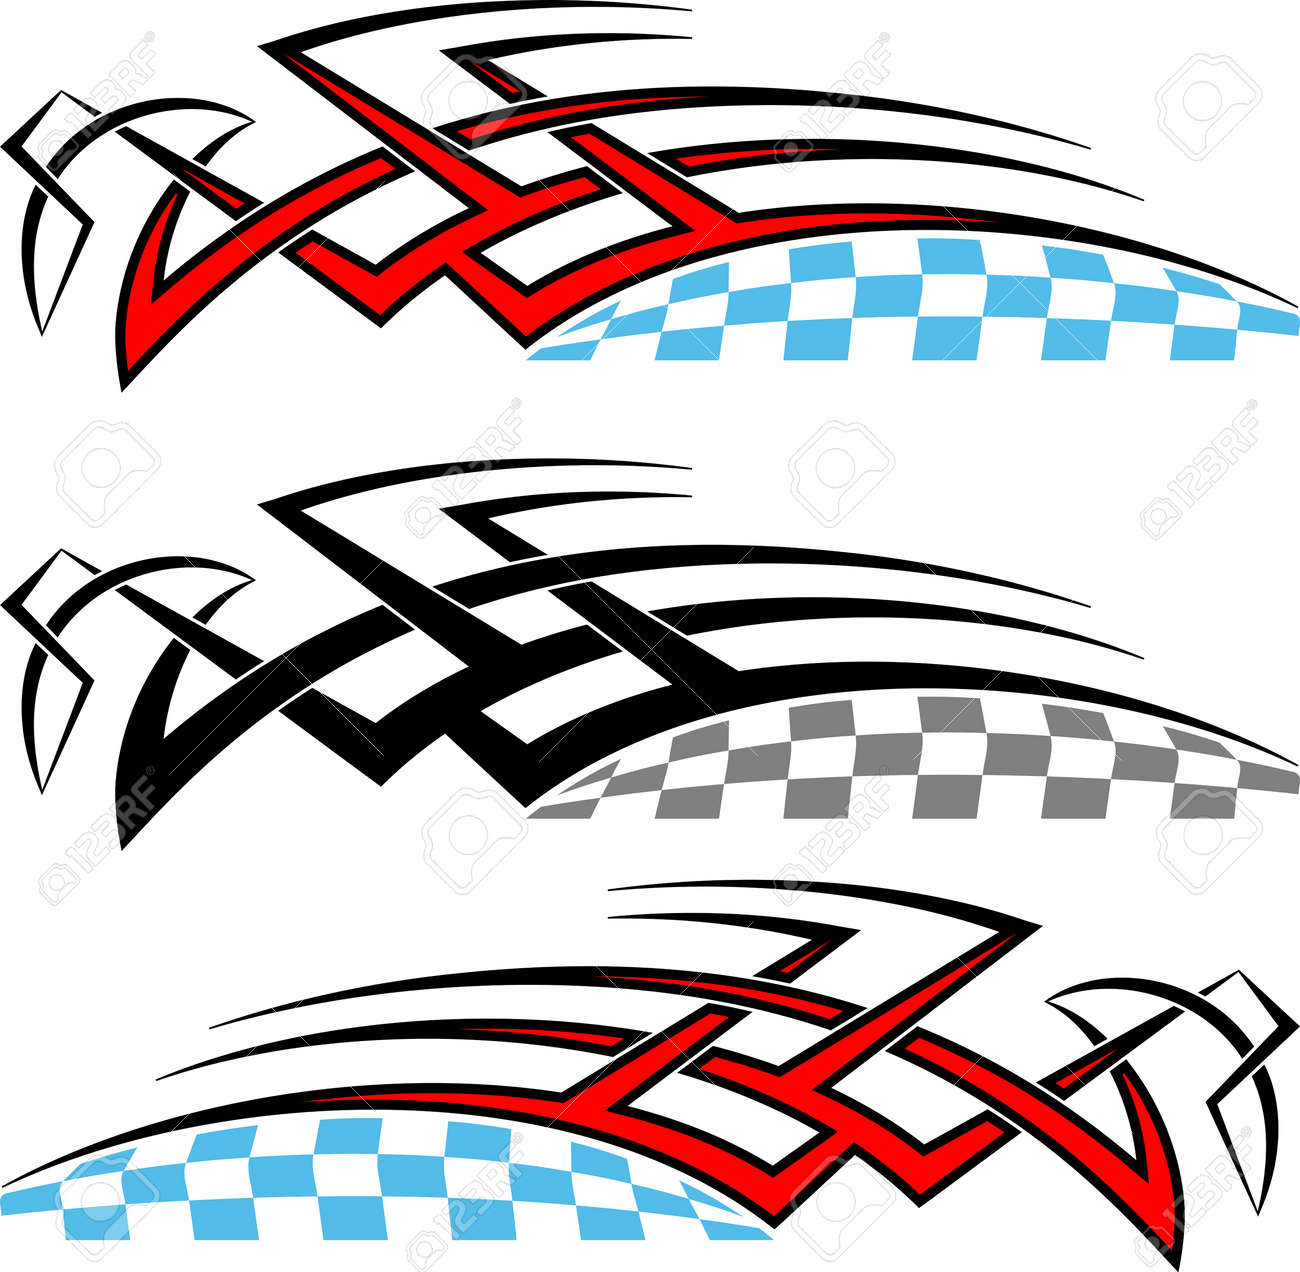 Tribal car decal vinyl ready vector illustration stock vector 55710660